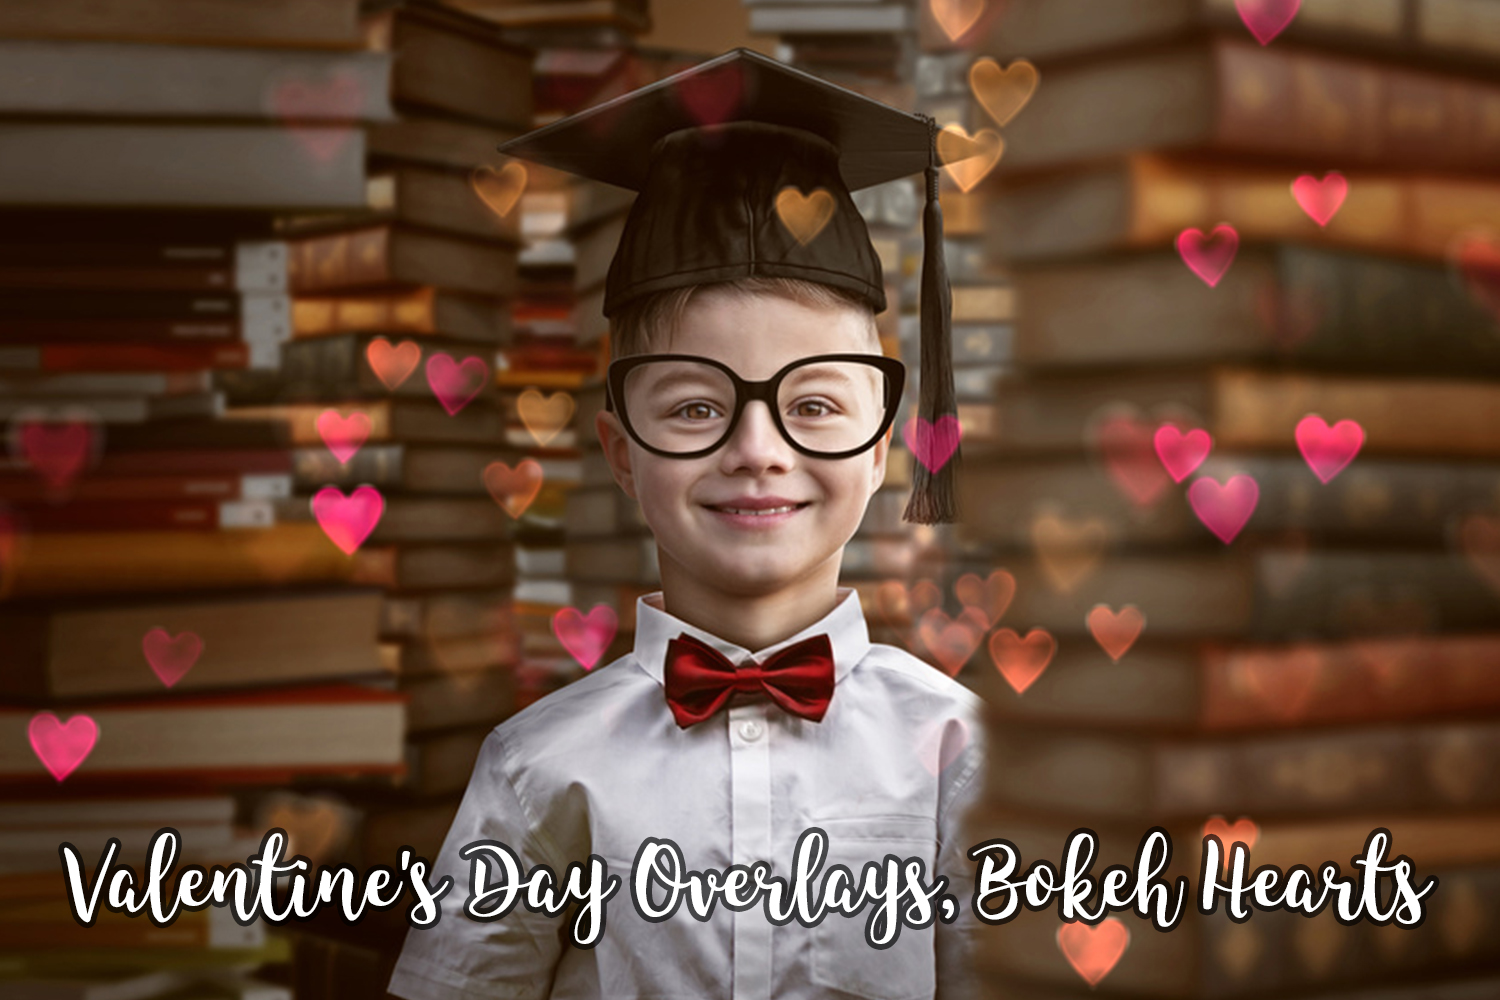 Valentine's Day Overlays, Bokeh Hearts Overlays example image 6